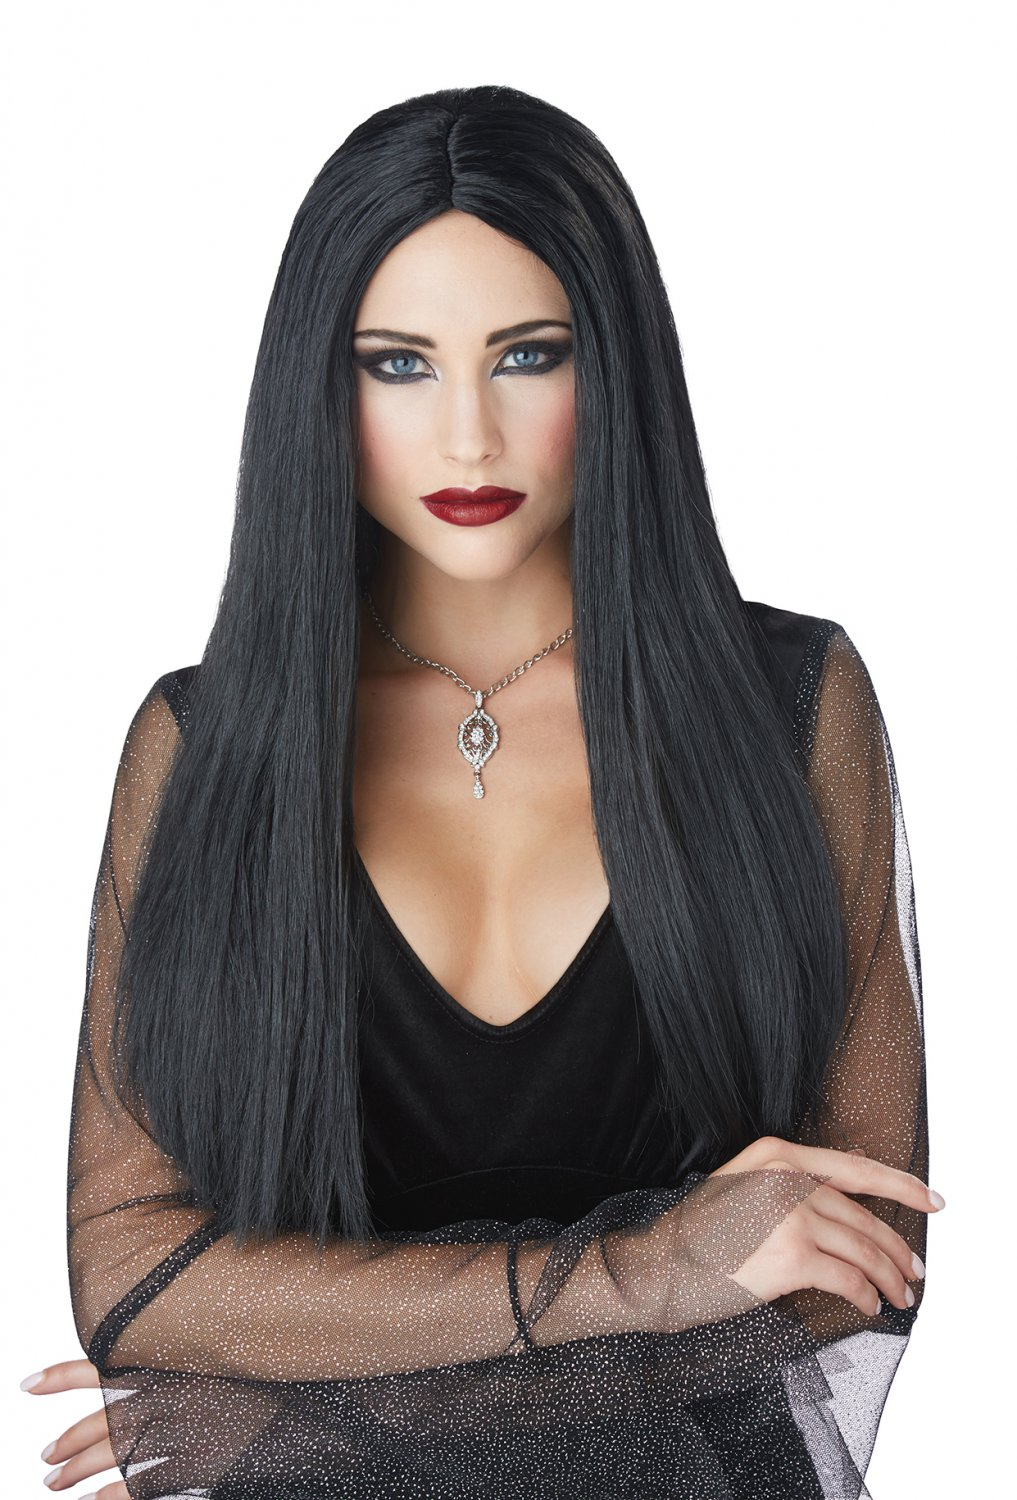 #70893 Sexy Demon Gothic Matriarch Witch Black Costume Accessory Wig